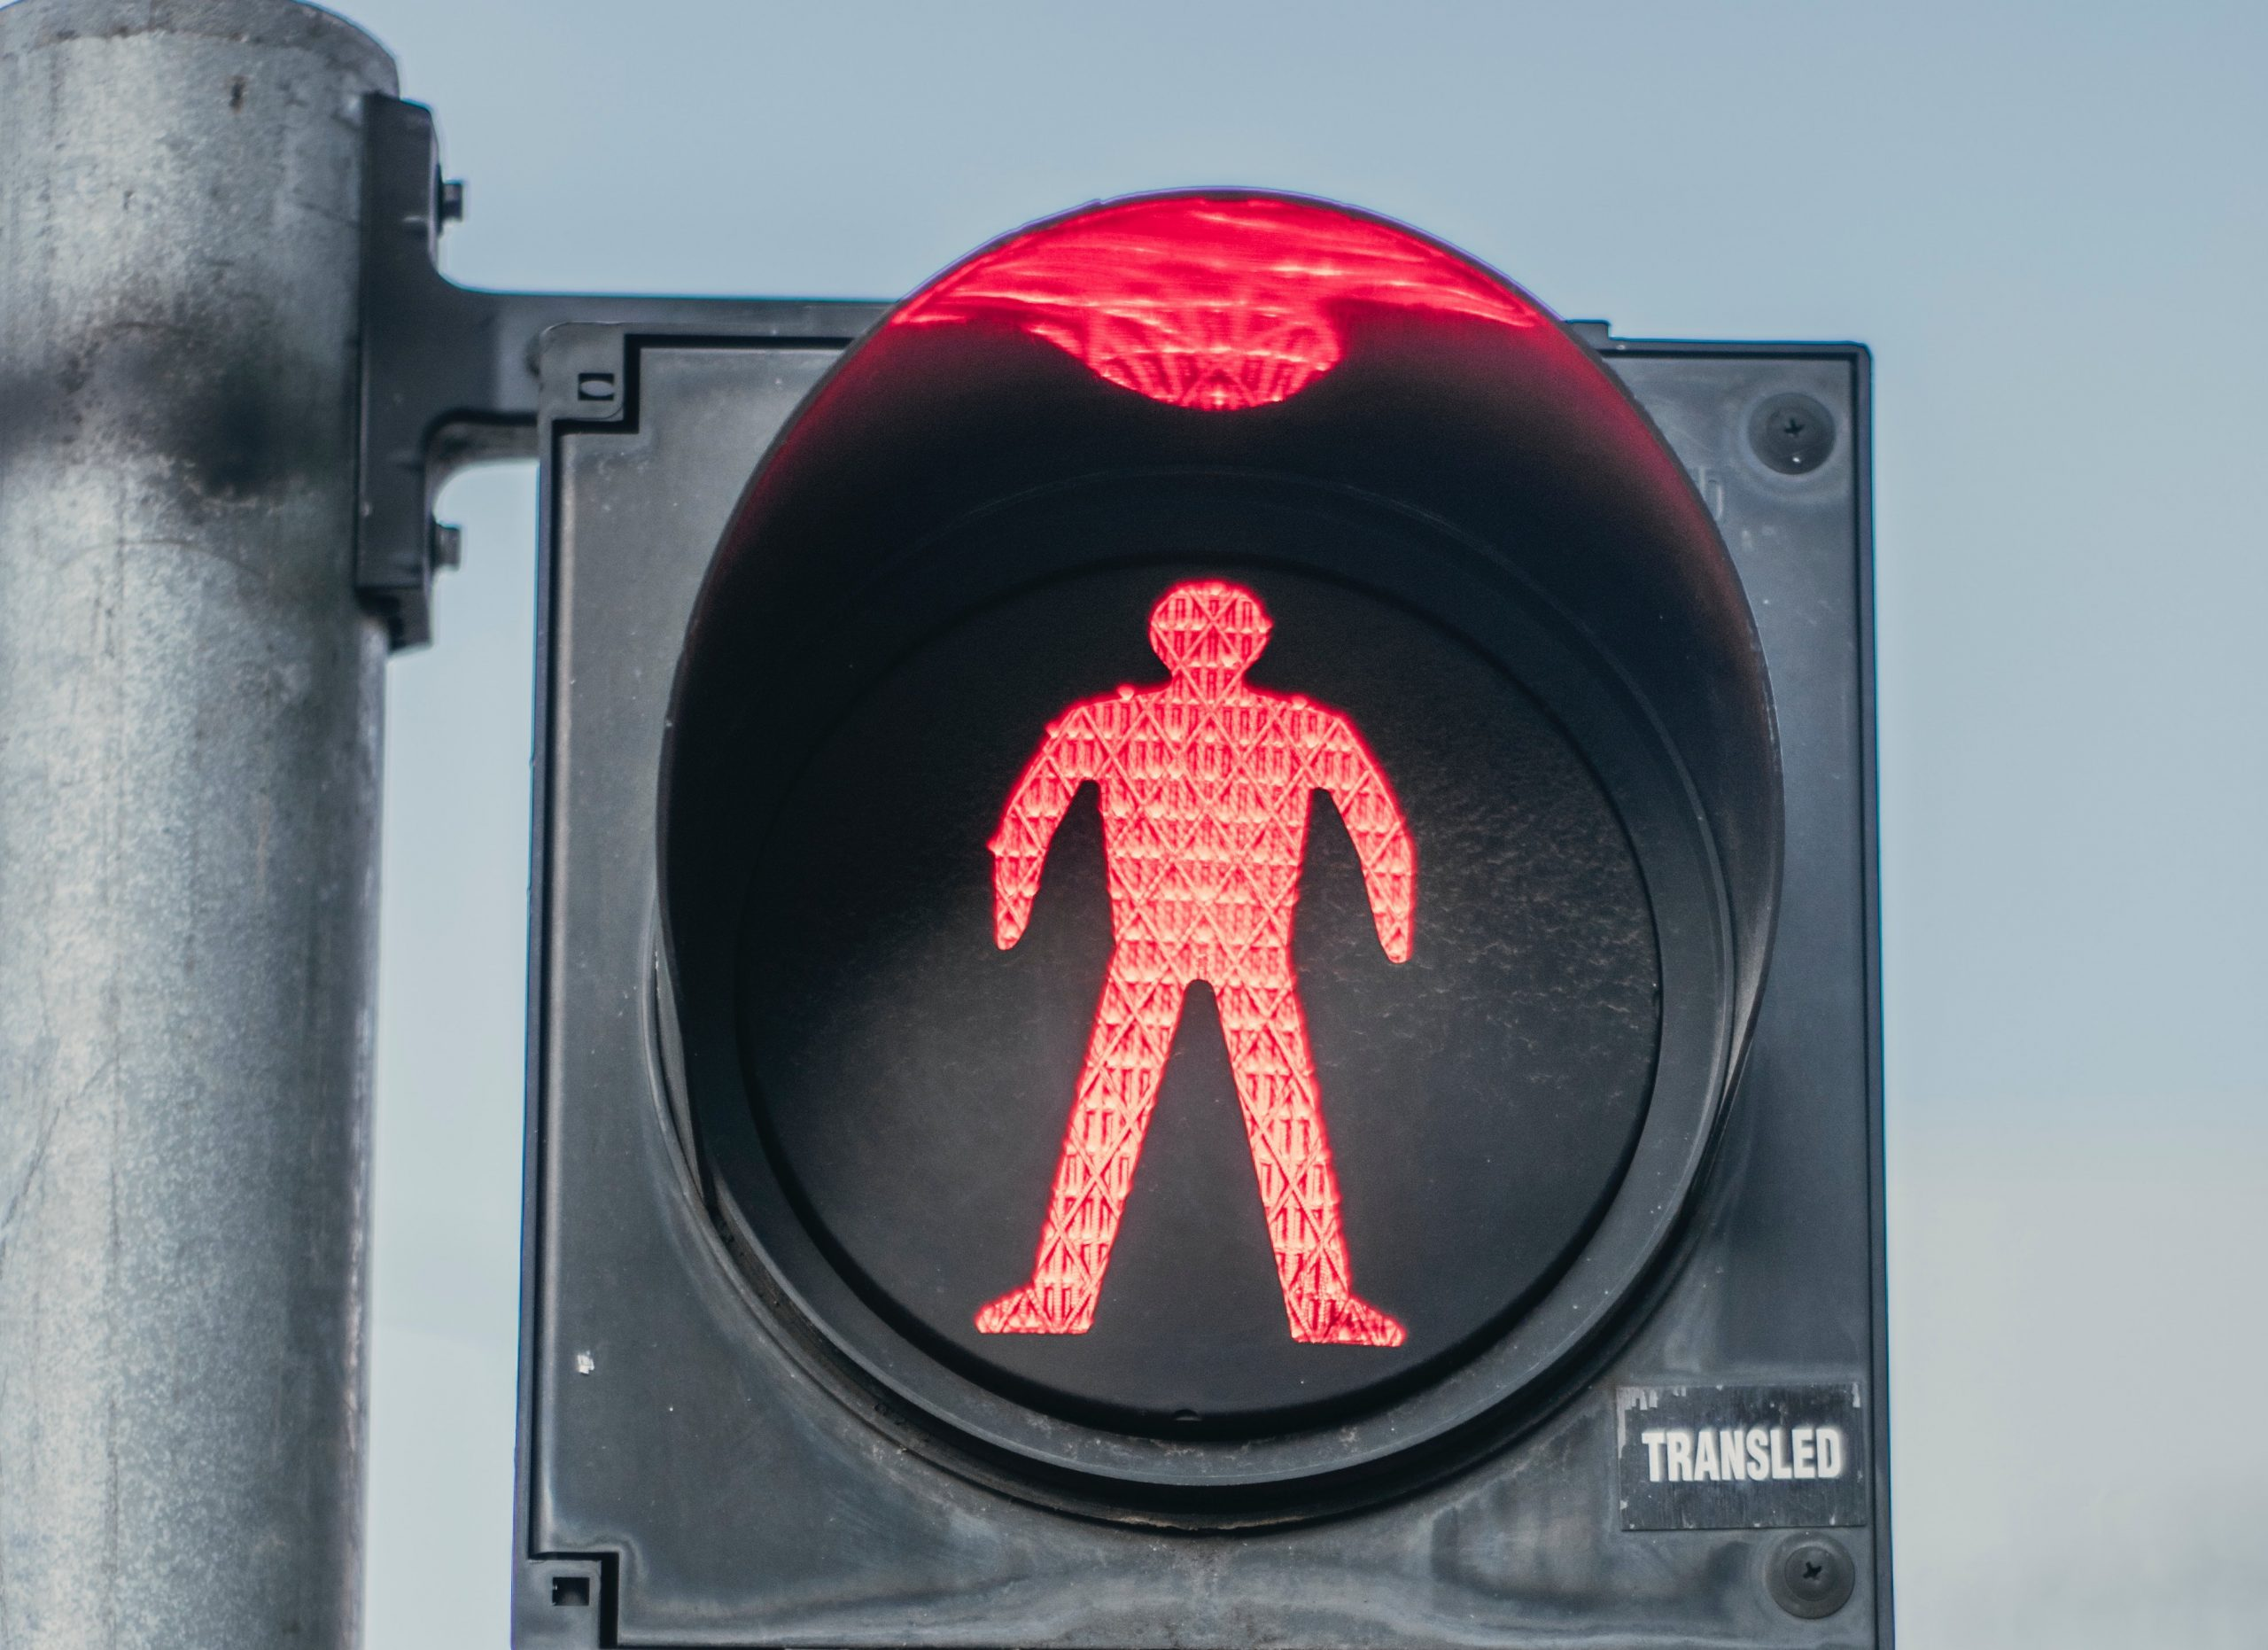 Pedestrian crossing sign showing don't walk